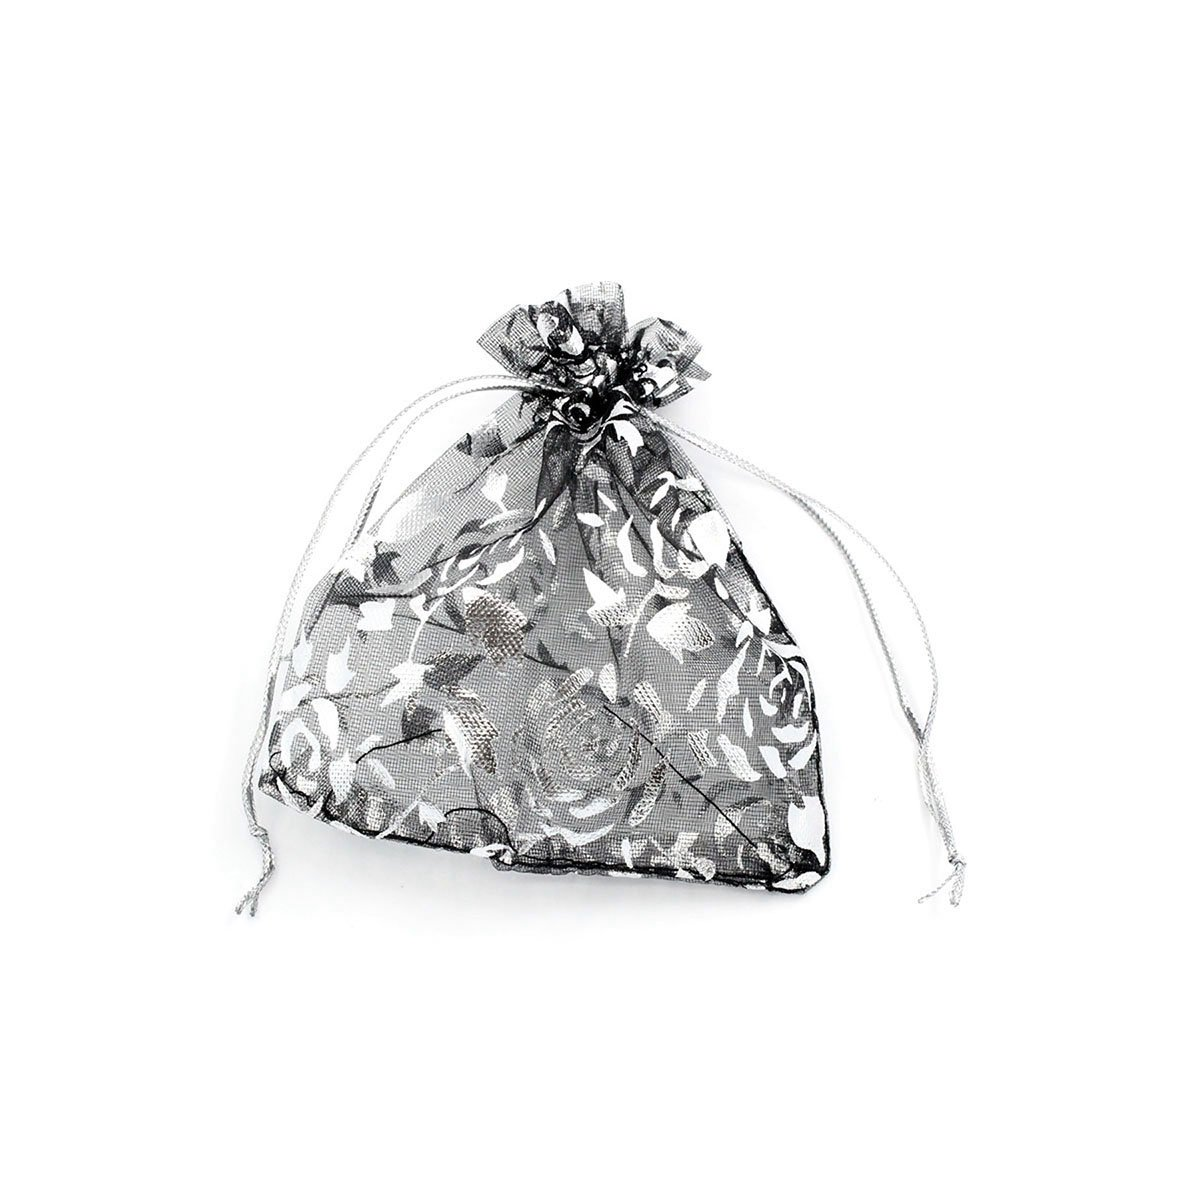 10cm x11.6cm Black With Silver Rose Organza Jewelry Pouches Wedding Party Christmas Gift Silk Bags 100pcs